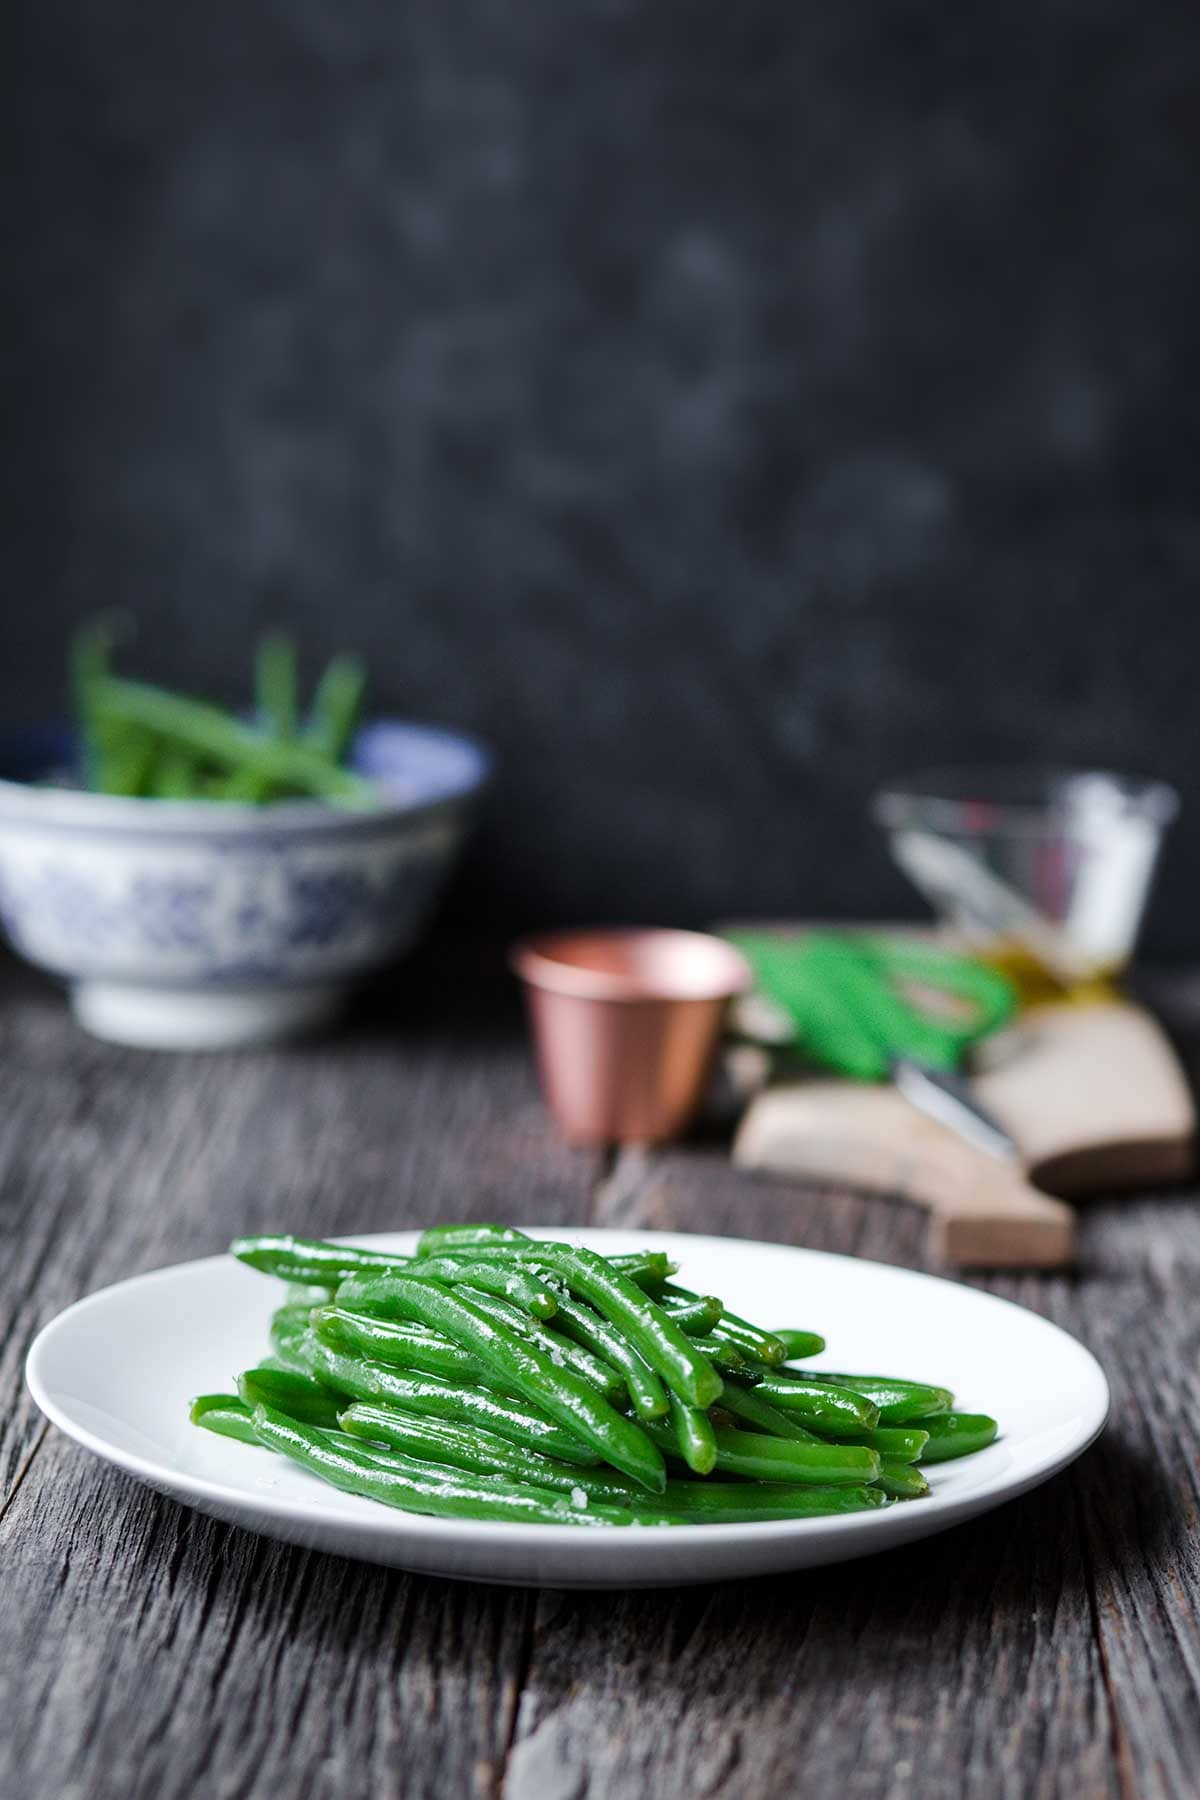 Cooked green beans on a plate